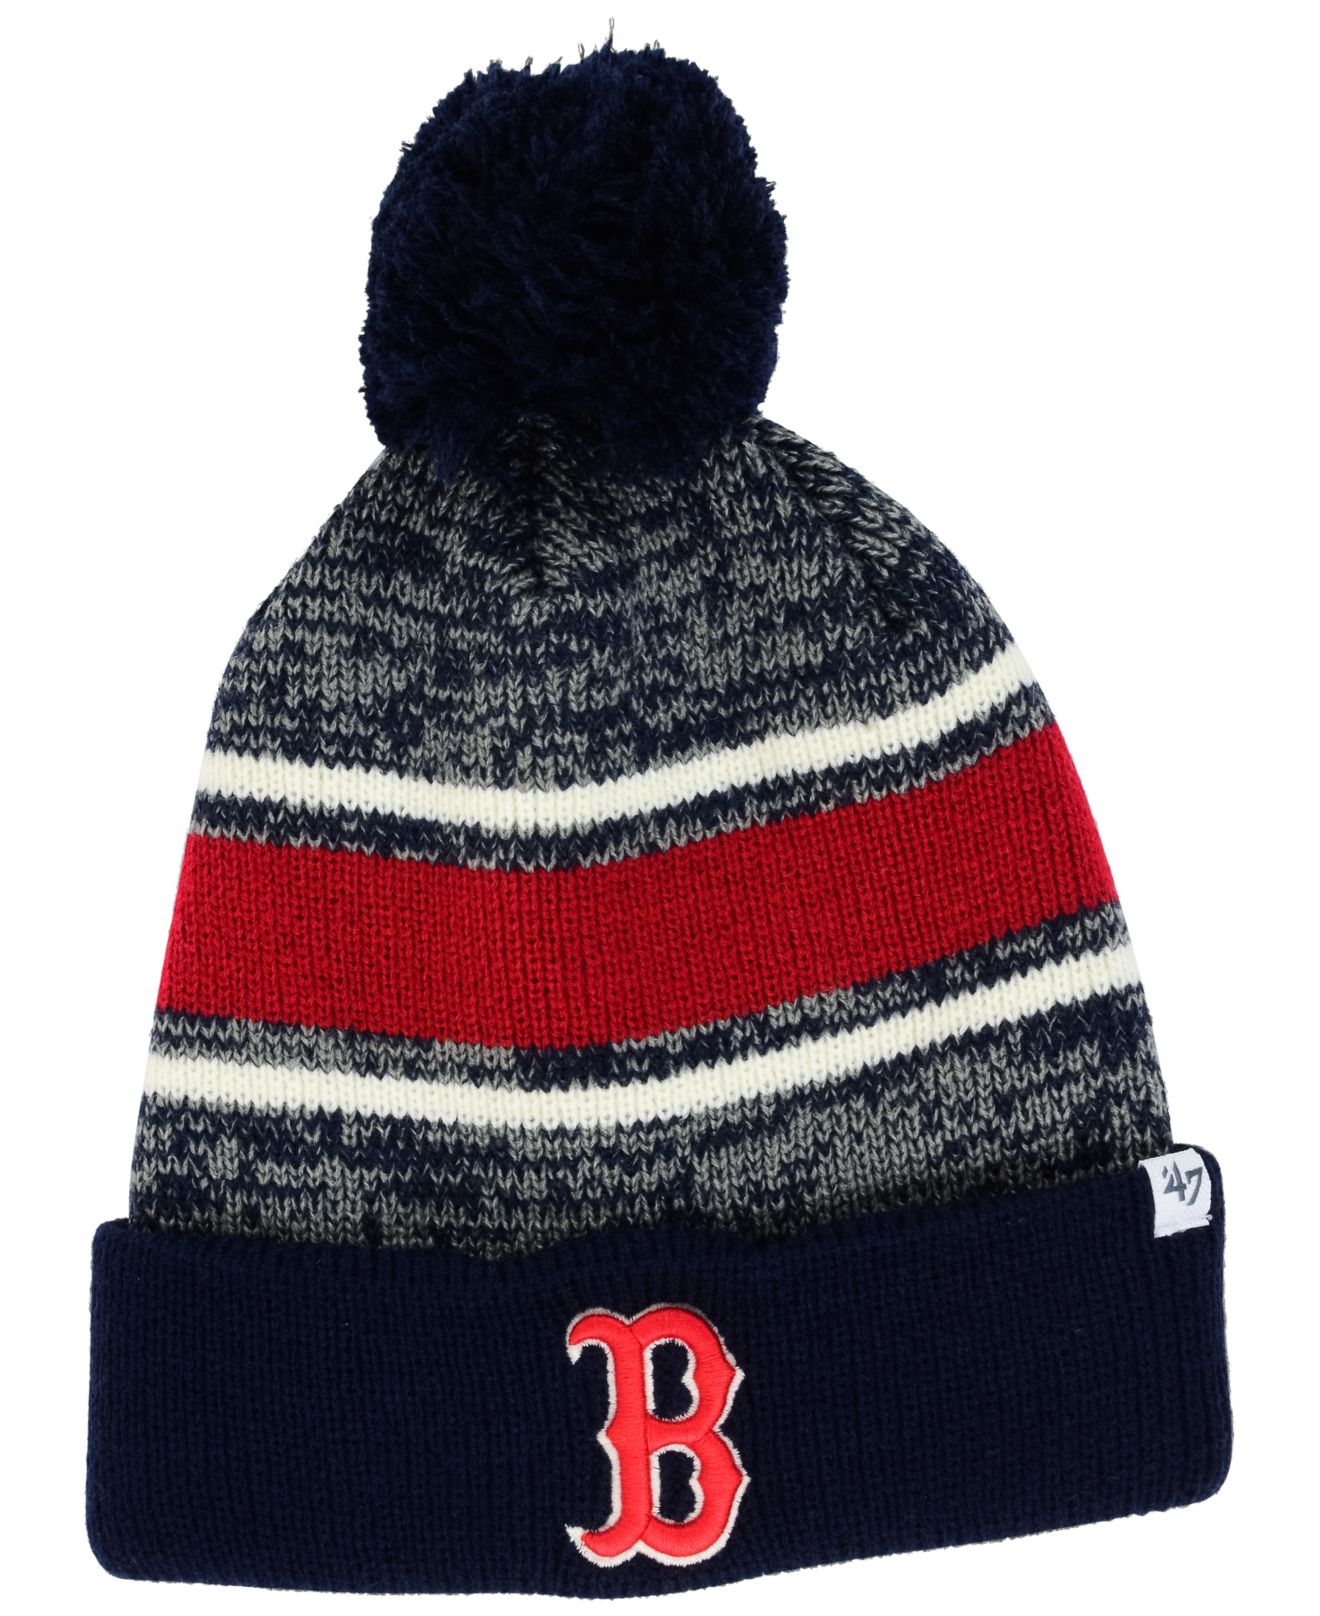 802bd0691 47 Brand Boston Red Sox Fairfax Knit Hat in Blue for Men - Lyst